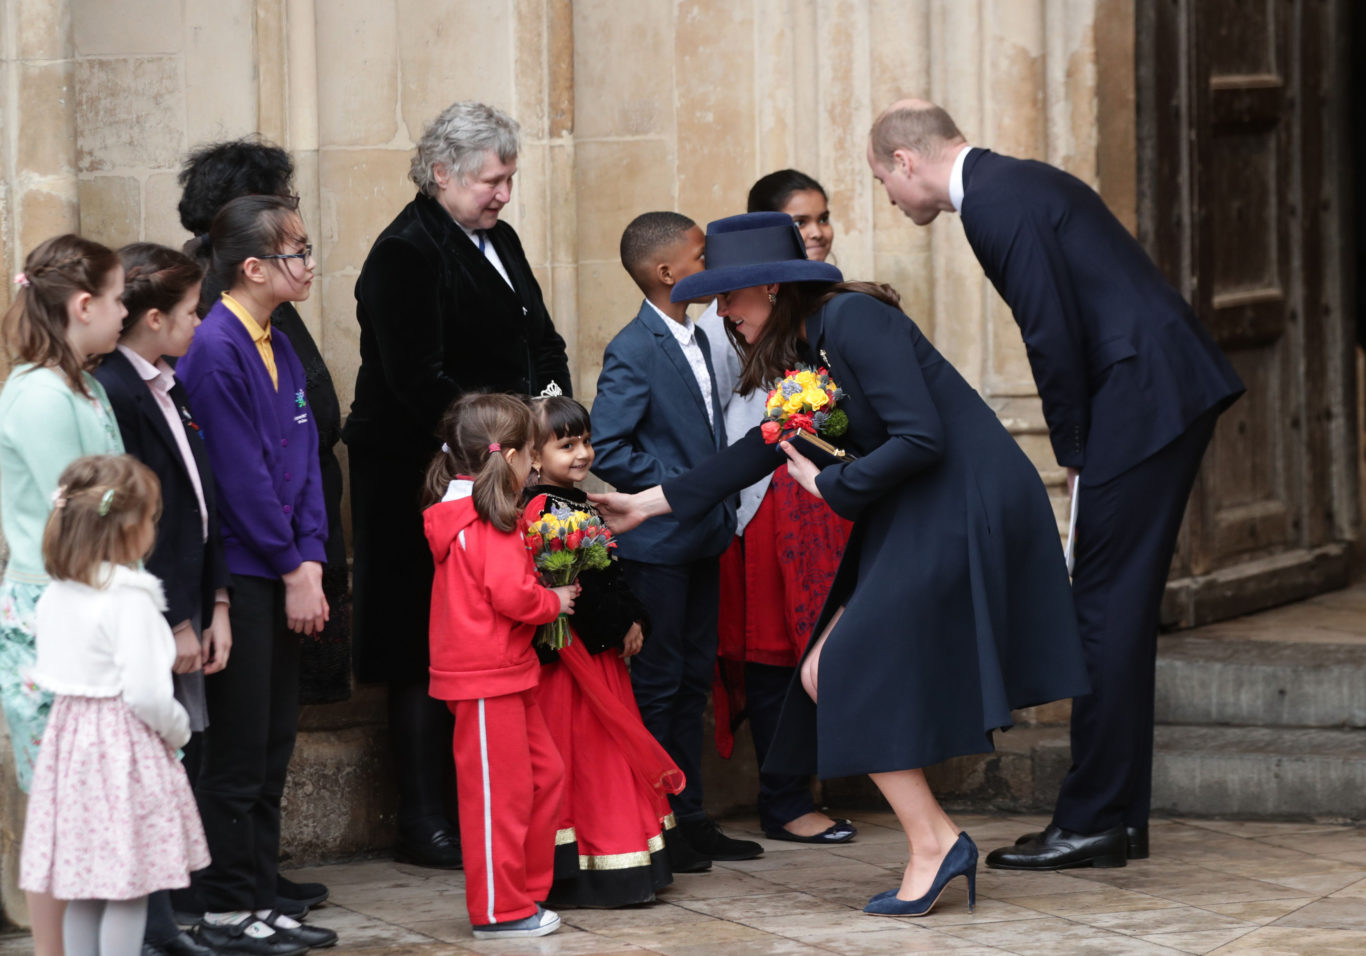 The Duke and Duchess of Cambridge talk to children as they leave Westminster Abbey (Yui Mok/PA)